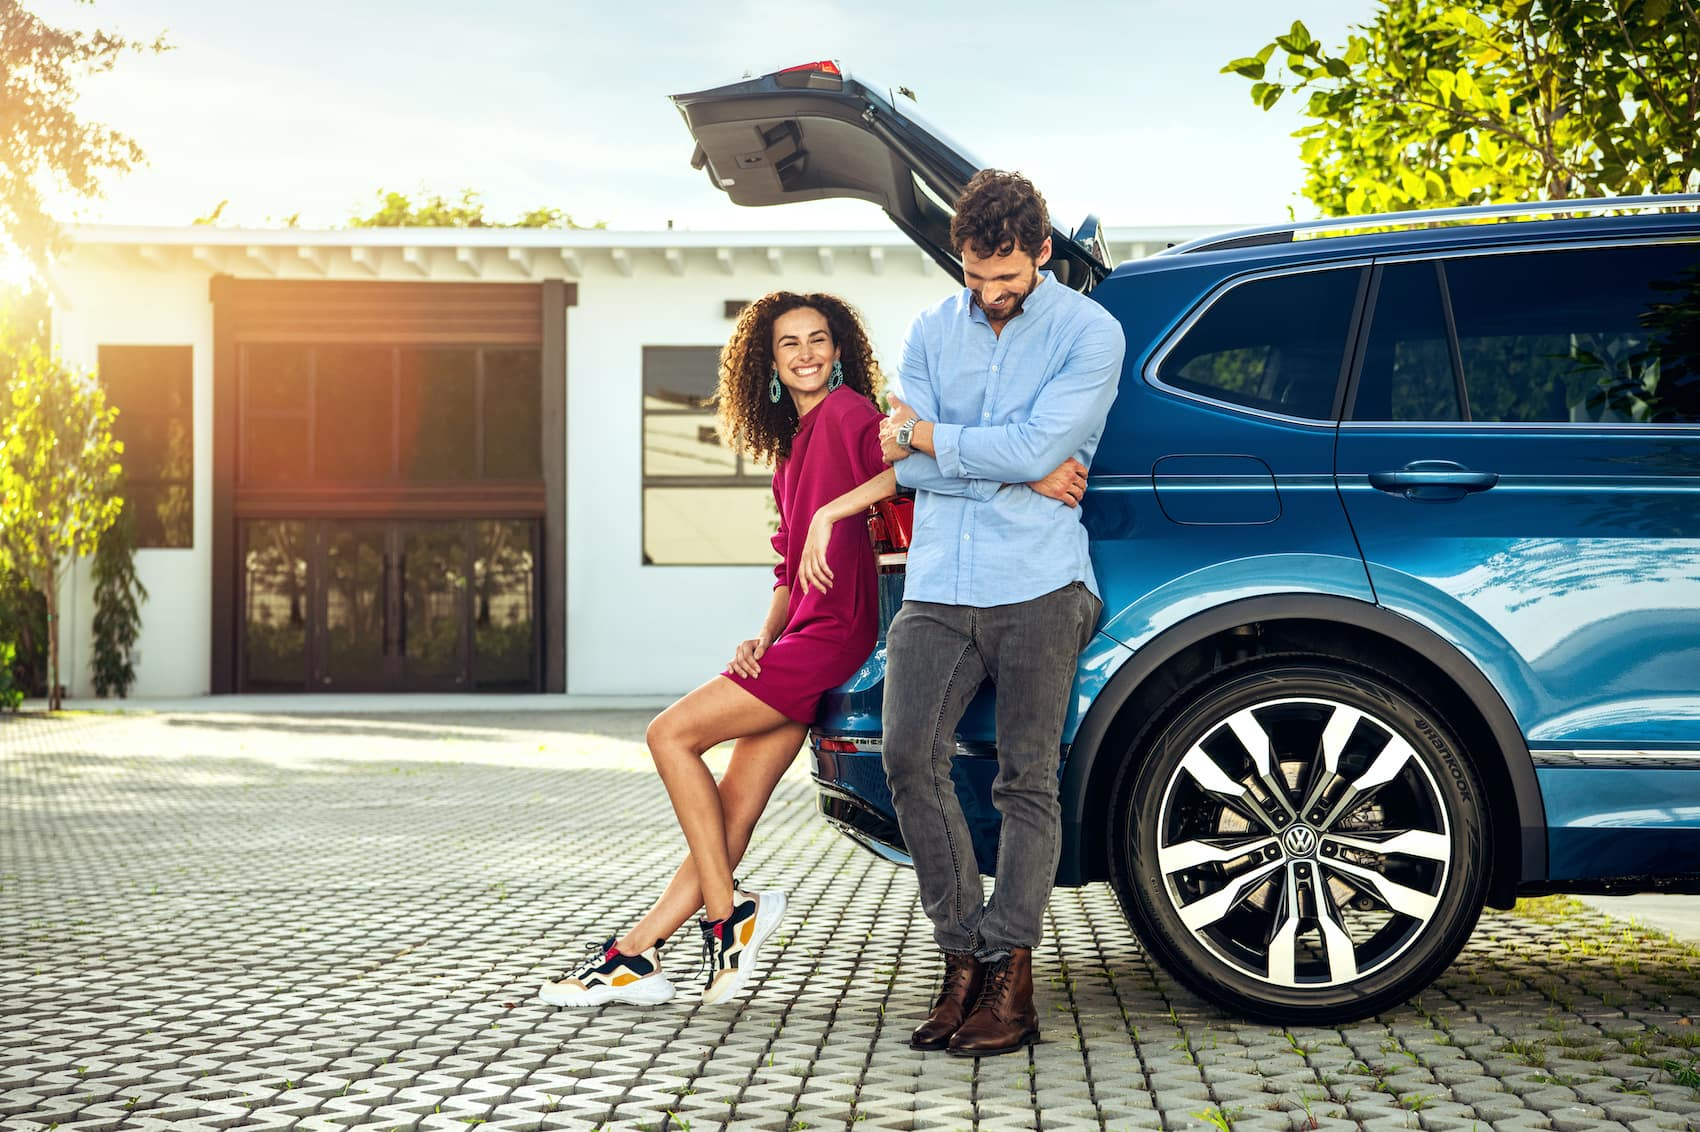 Browse the Inventory at Our VW Dealer